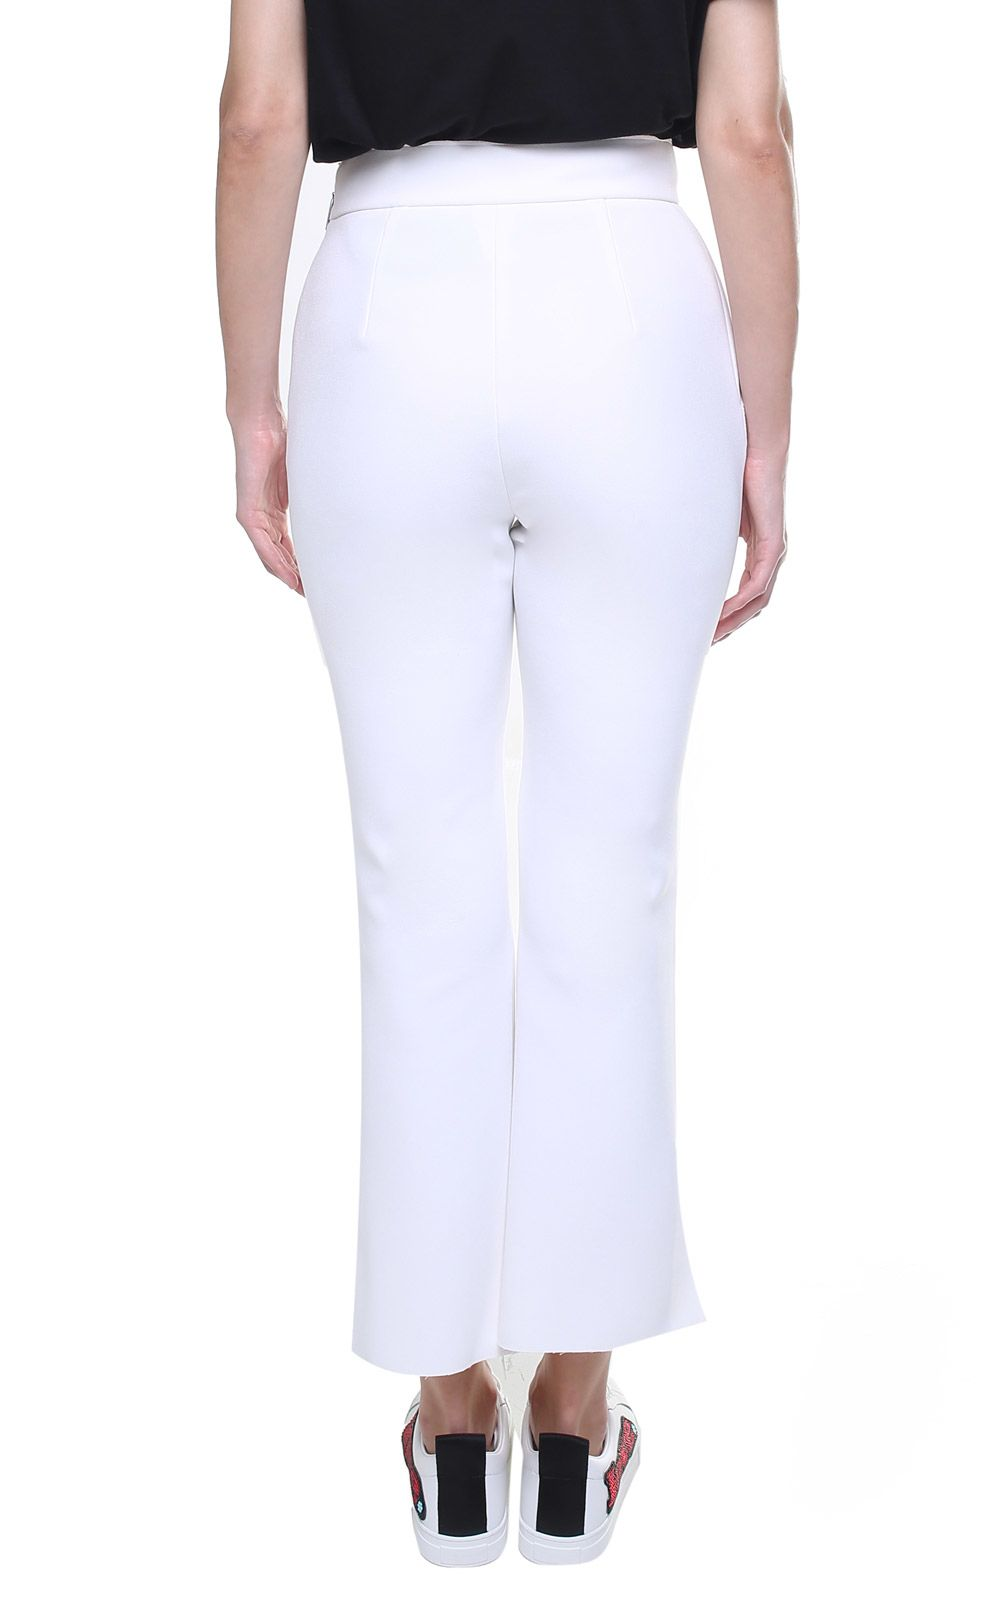 Button-embellished stretch-jersey trousers Msgm Outlet Low Price Fee Shipping Latest Outlet Store Locations Cheap Sale For Sale RXUXikXos